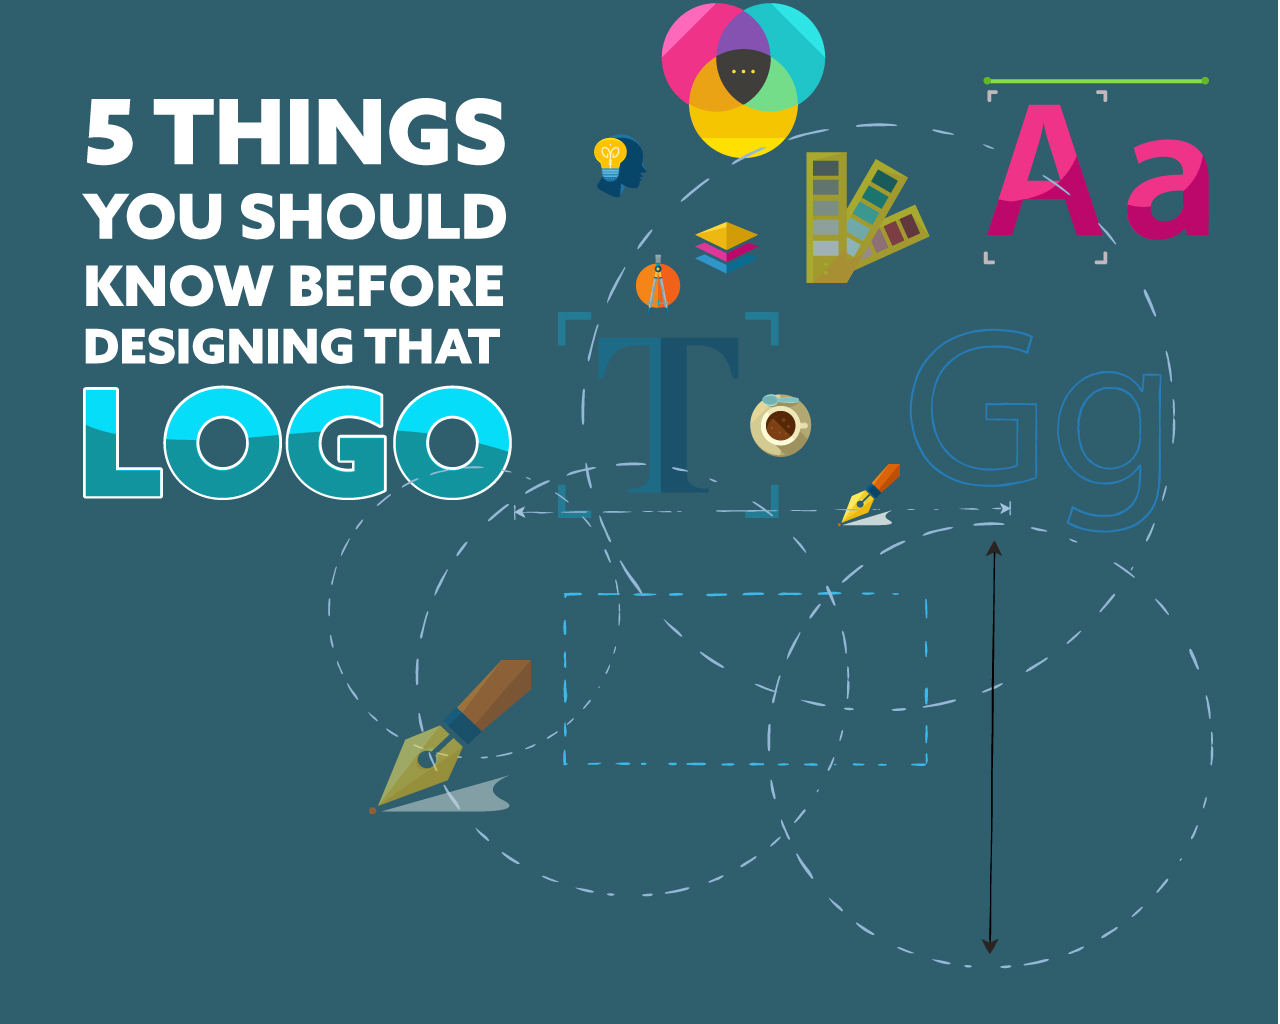 5 Tips on designing a logo before you design a logo